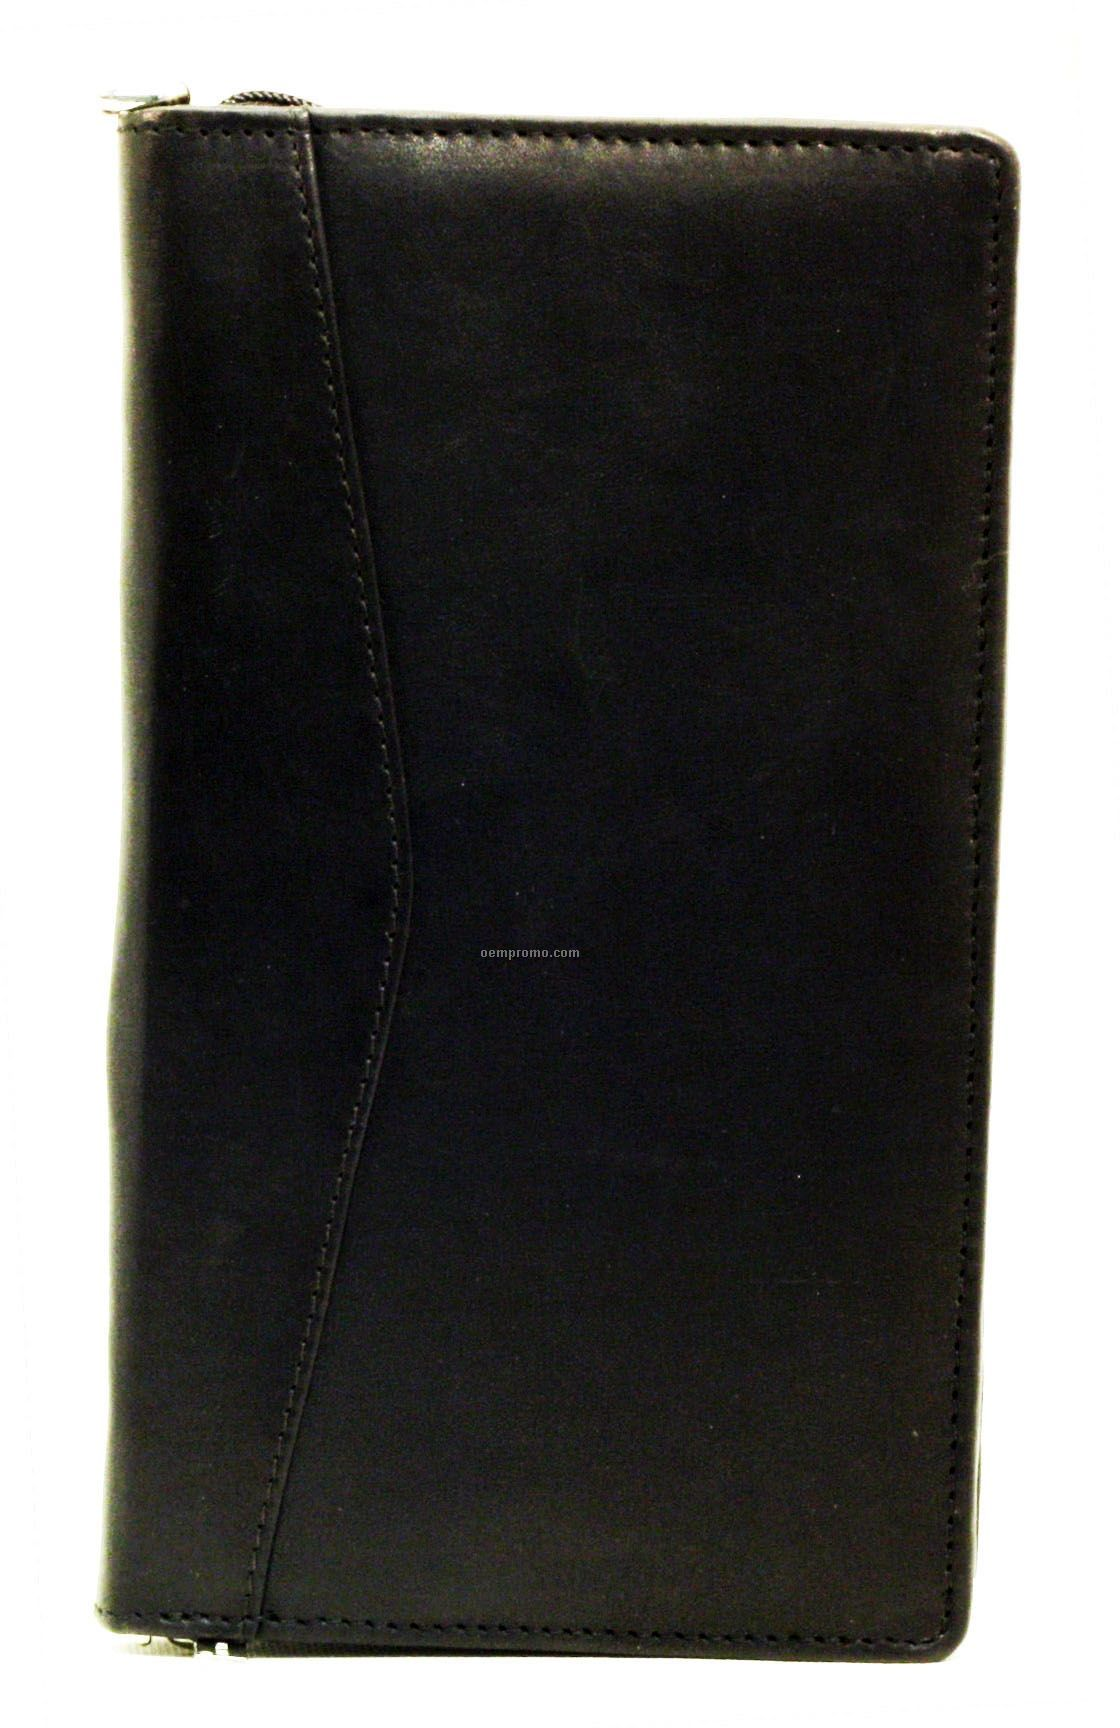 black nappa leather how to clean